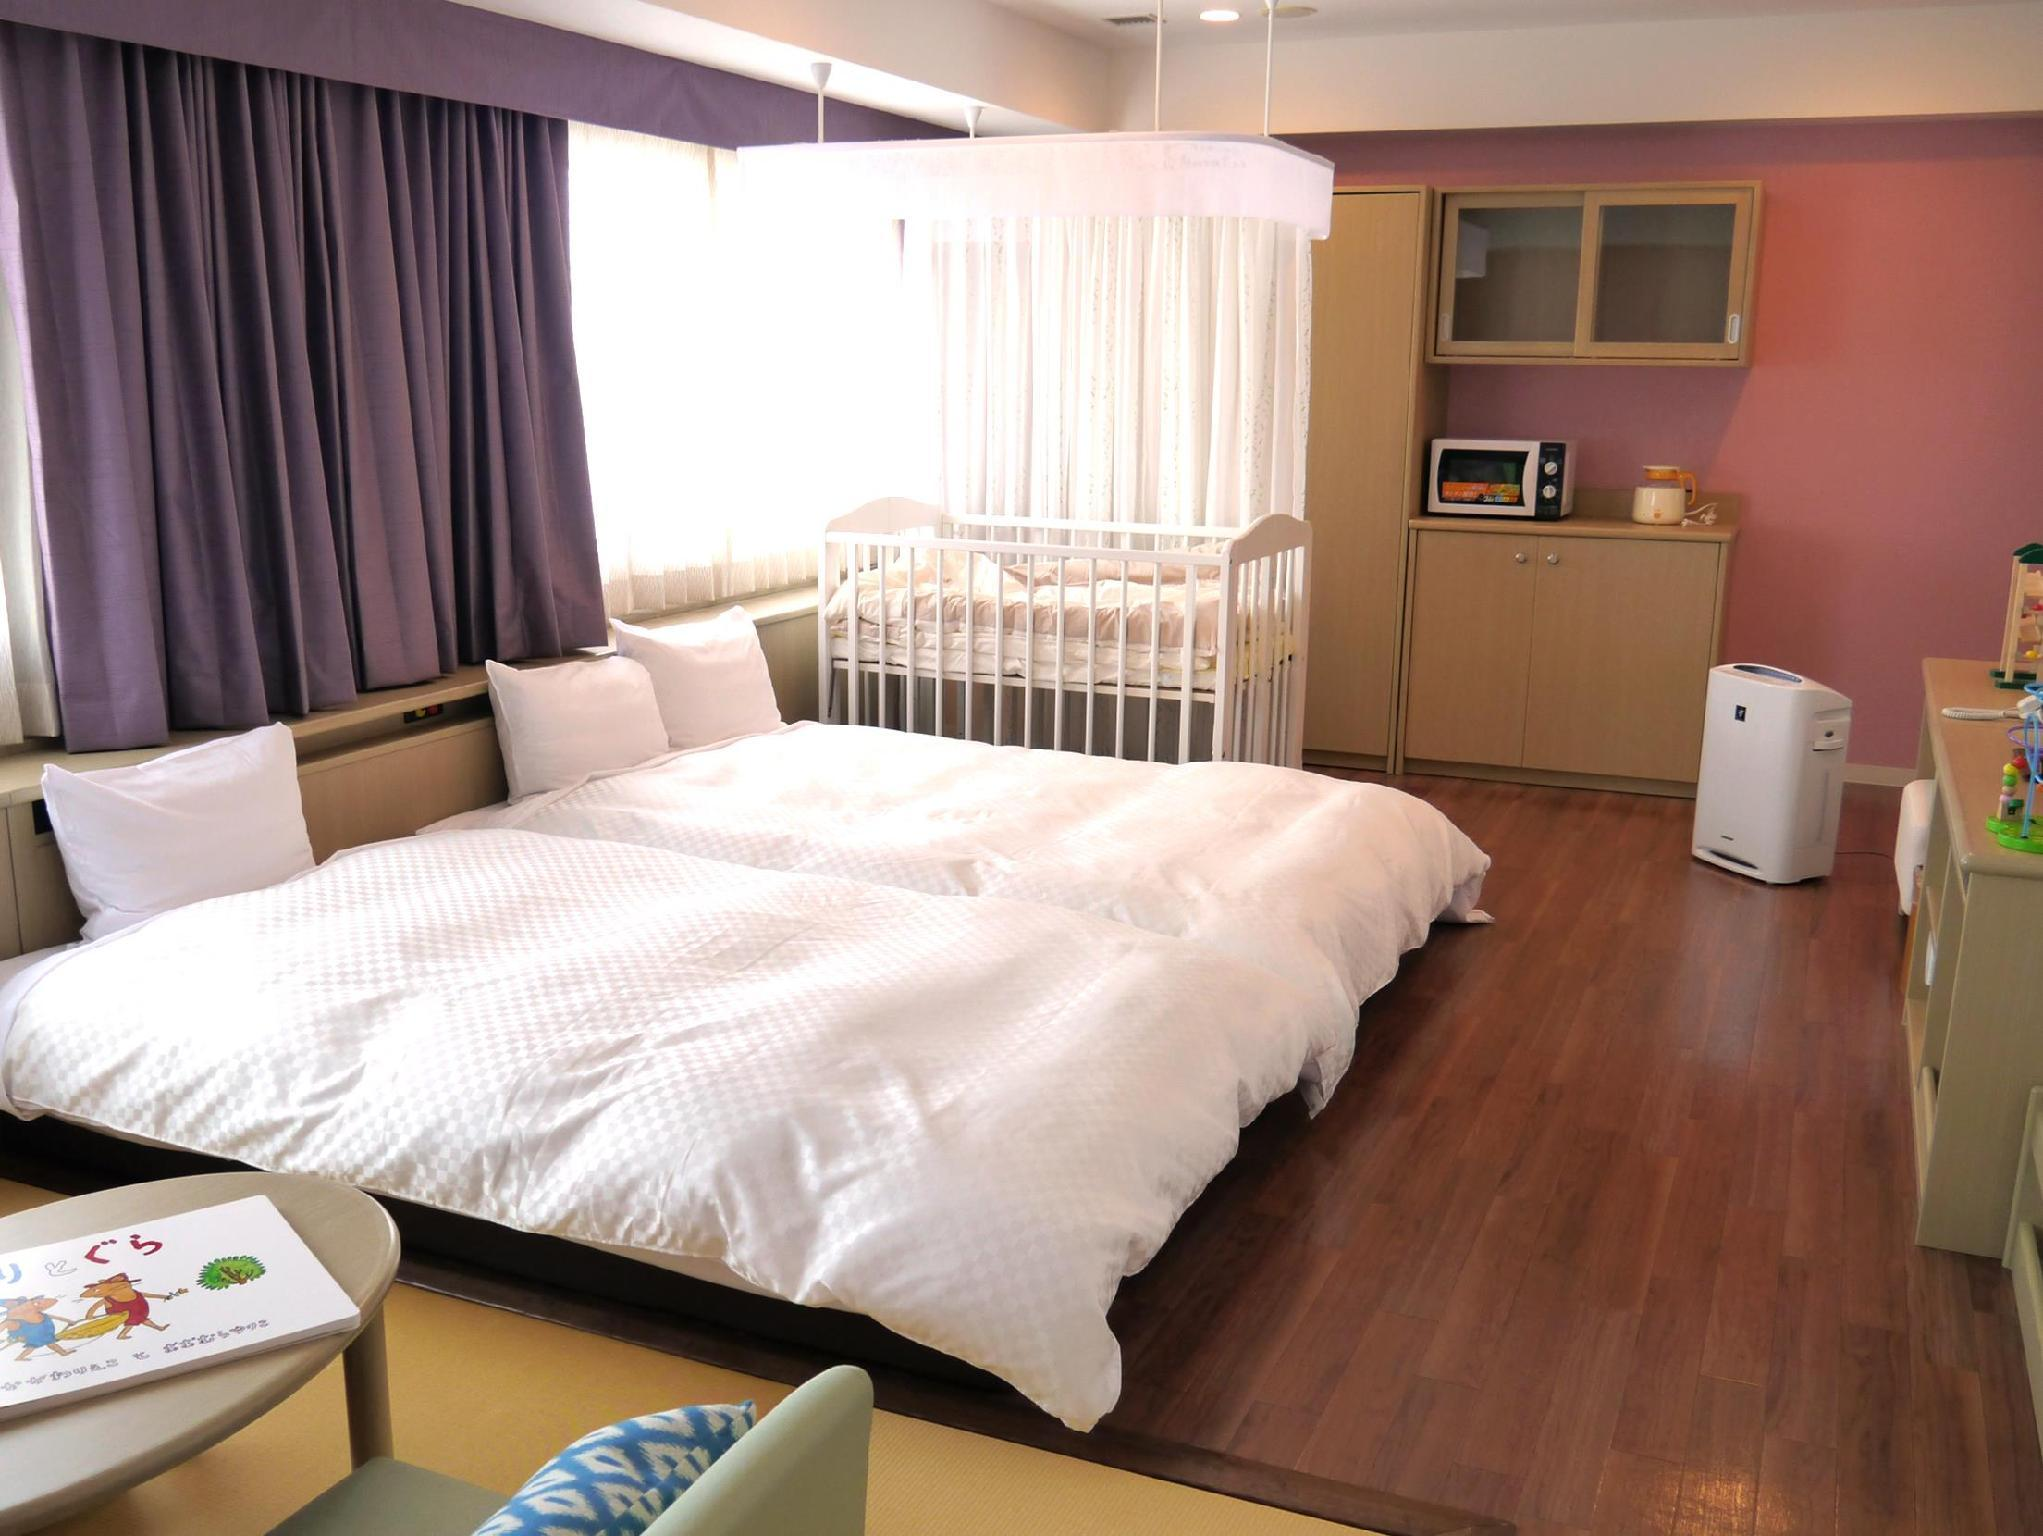 키즈 앤 올 패밀리룸 (금연) (Kids N All Family Room - Non-Smoking)